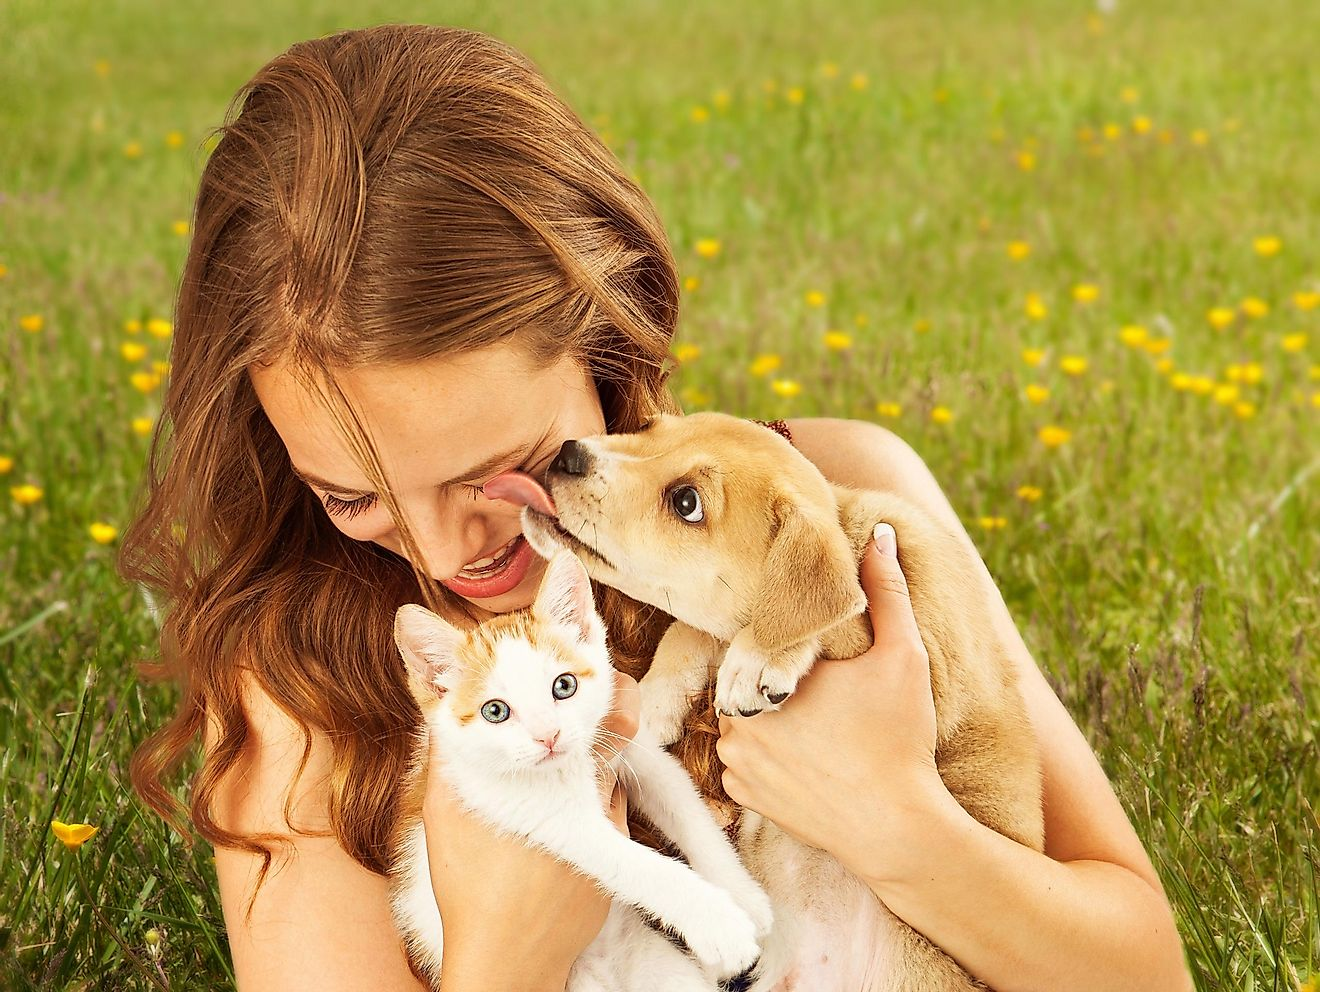 The majority of the pet owners in the United States own dogs and cats.